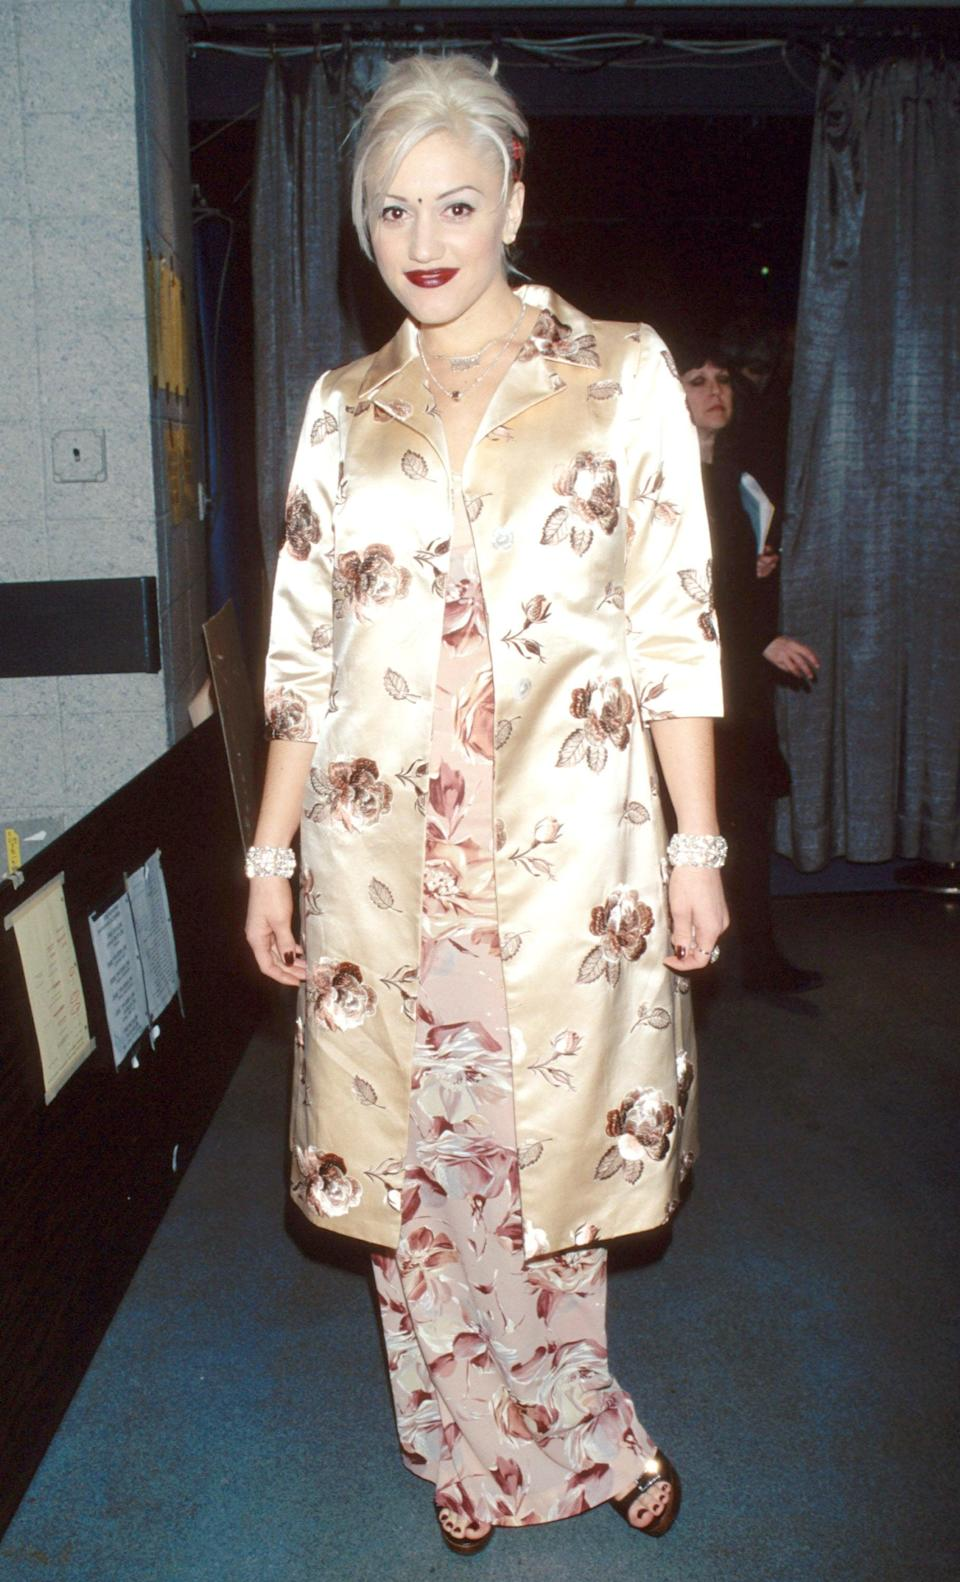 <p>In New York in 1997 wearing a floral dress and silk jacket on top.</p>